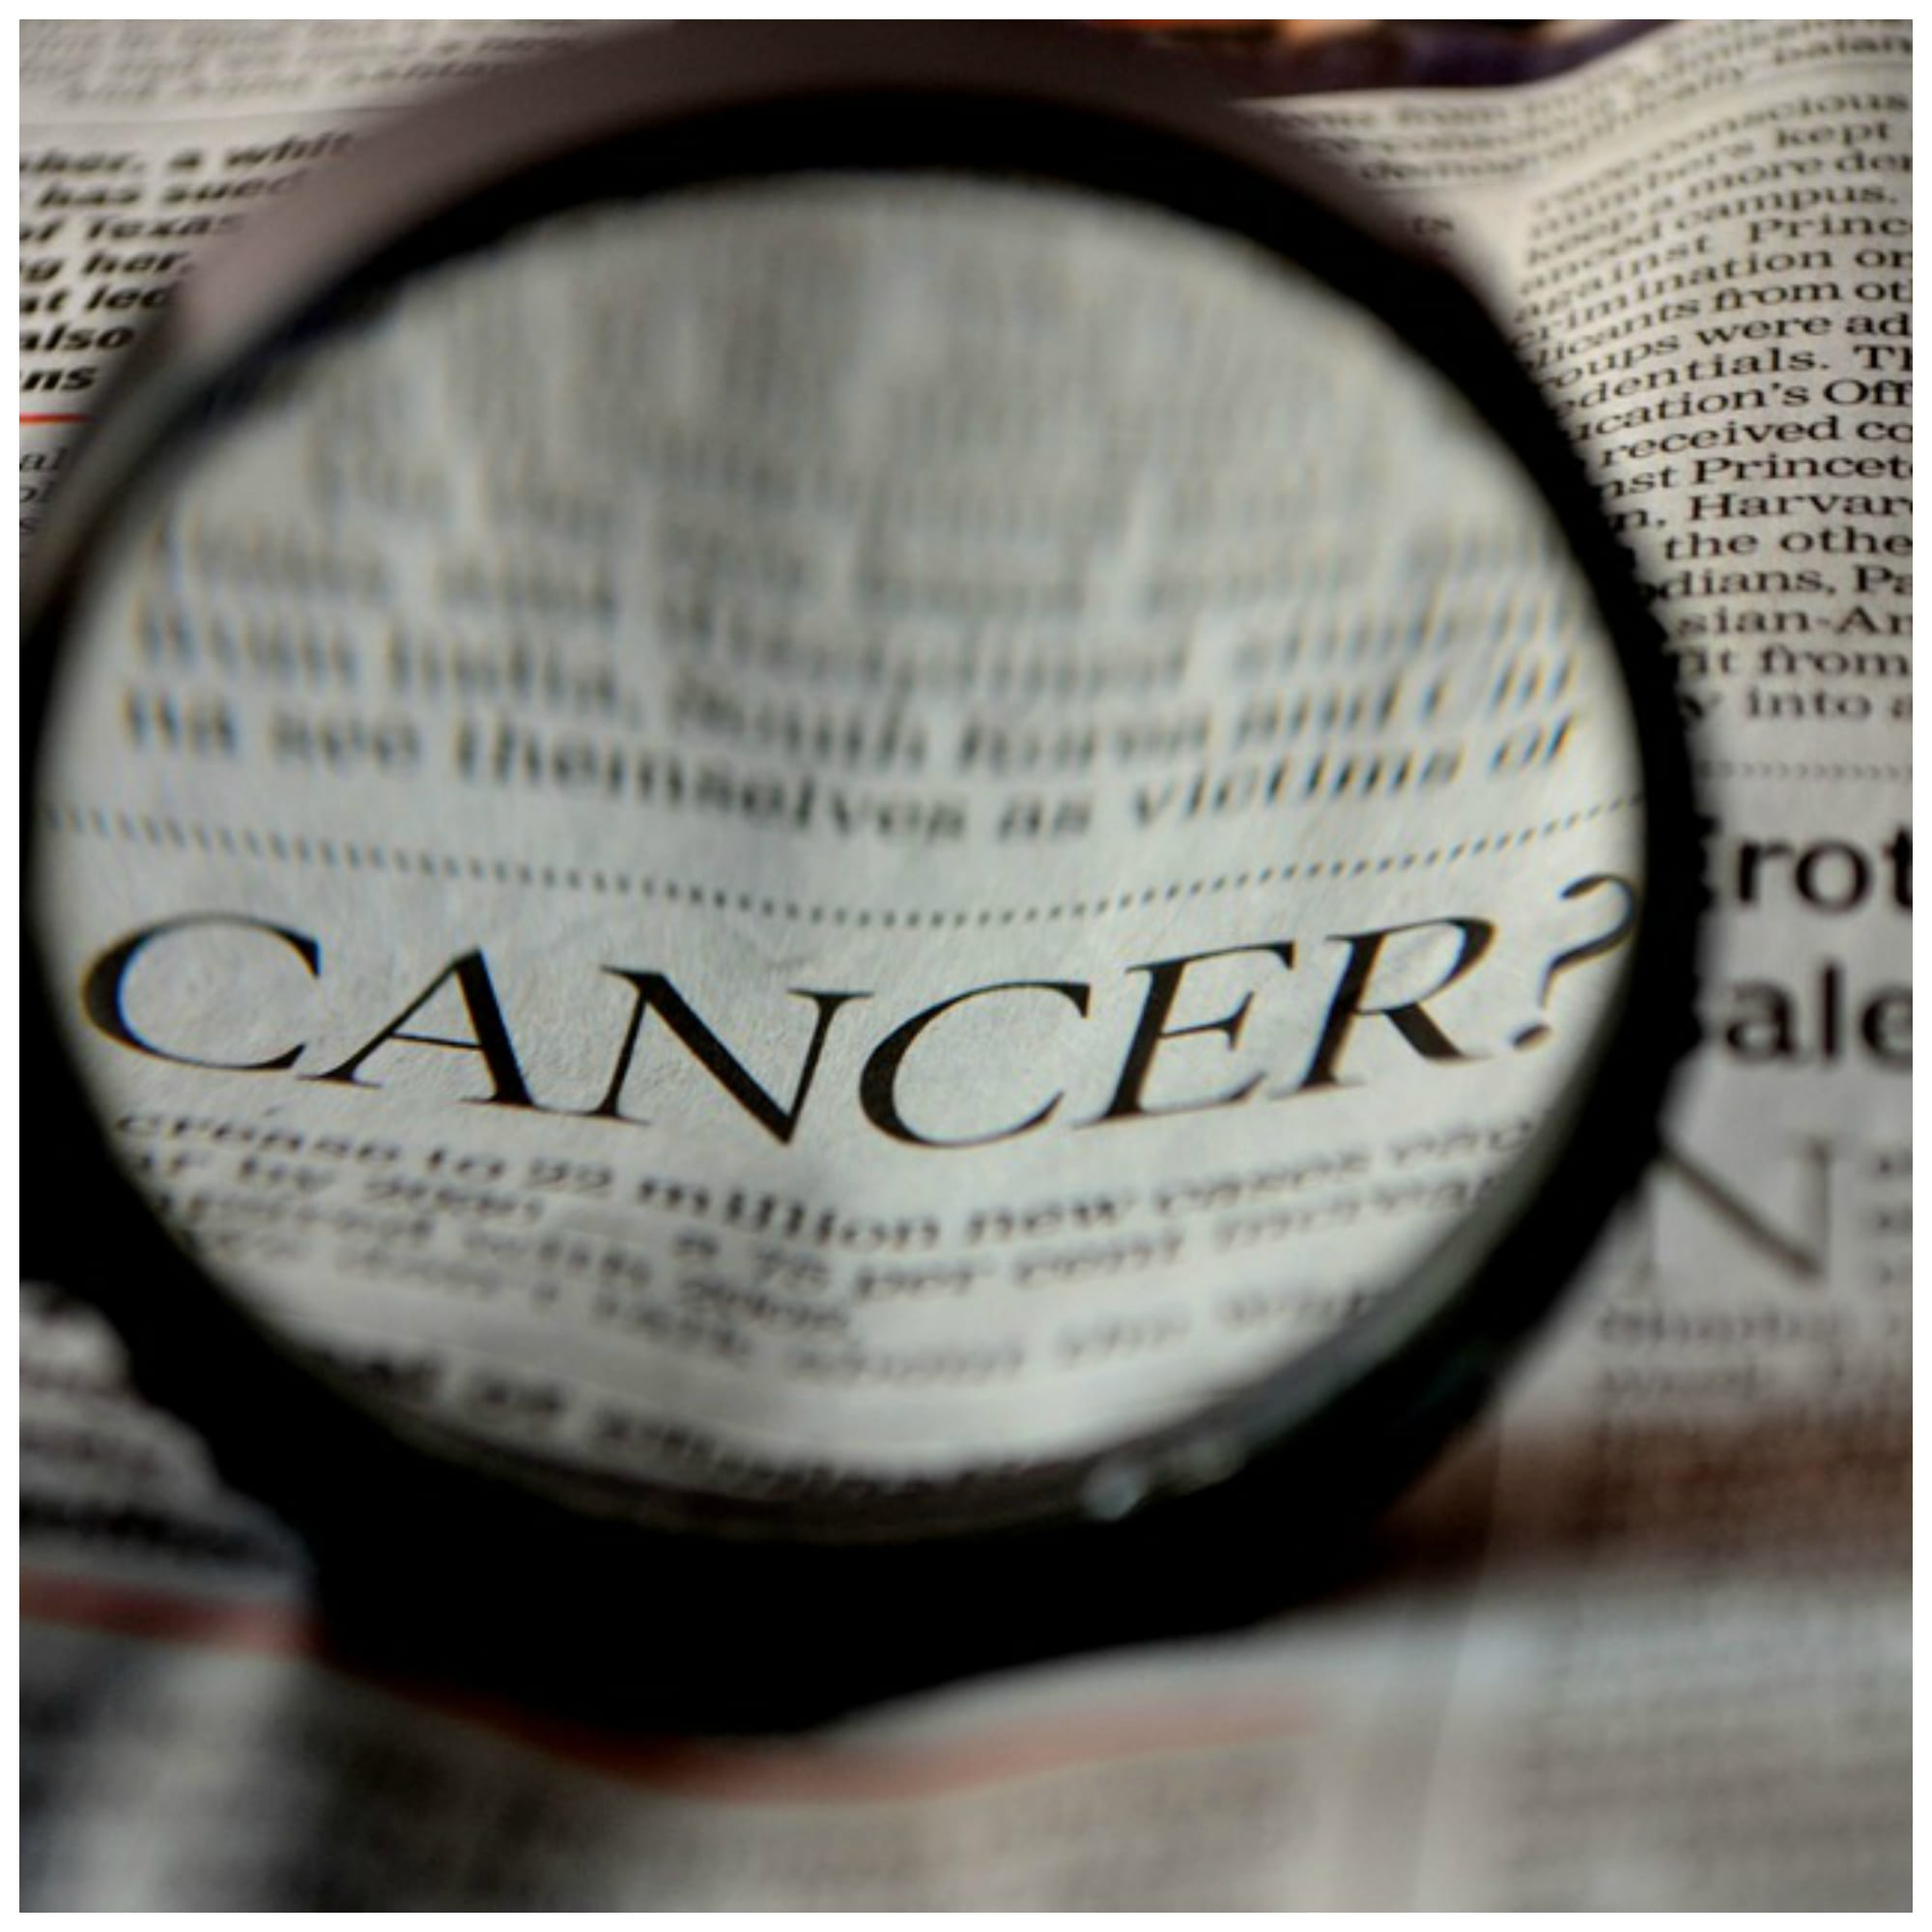 Dr. Revici Method - Is Cancer Caused By a Simple Imbalance?